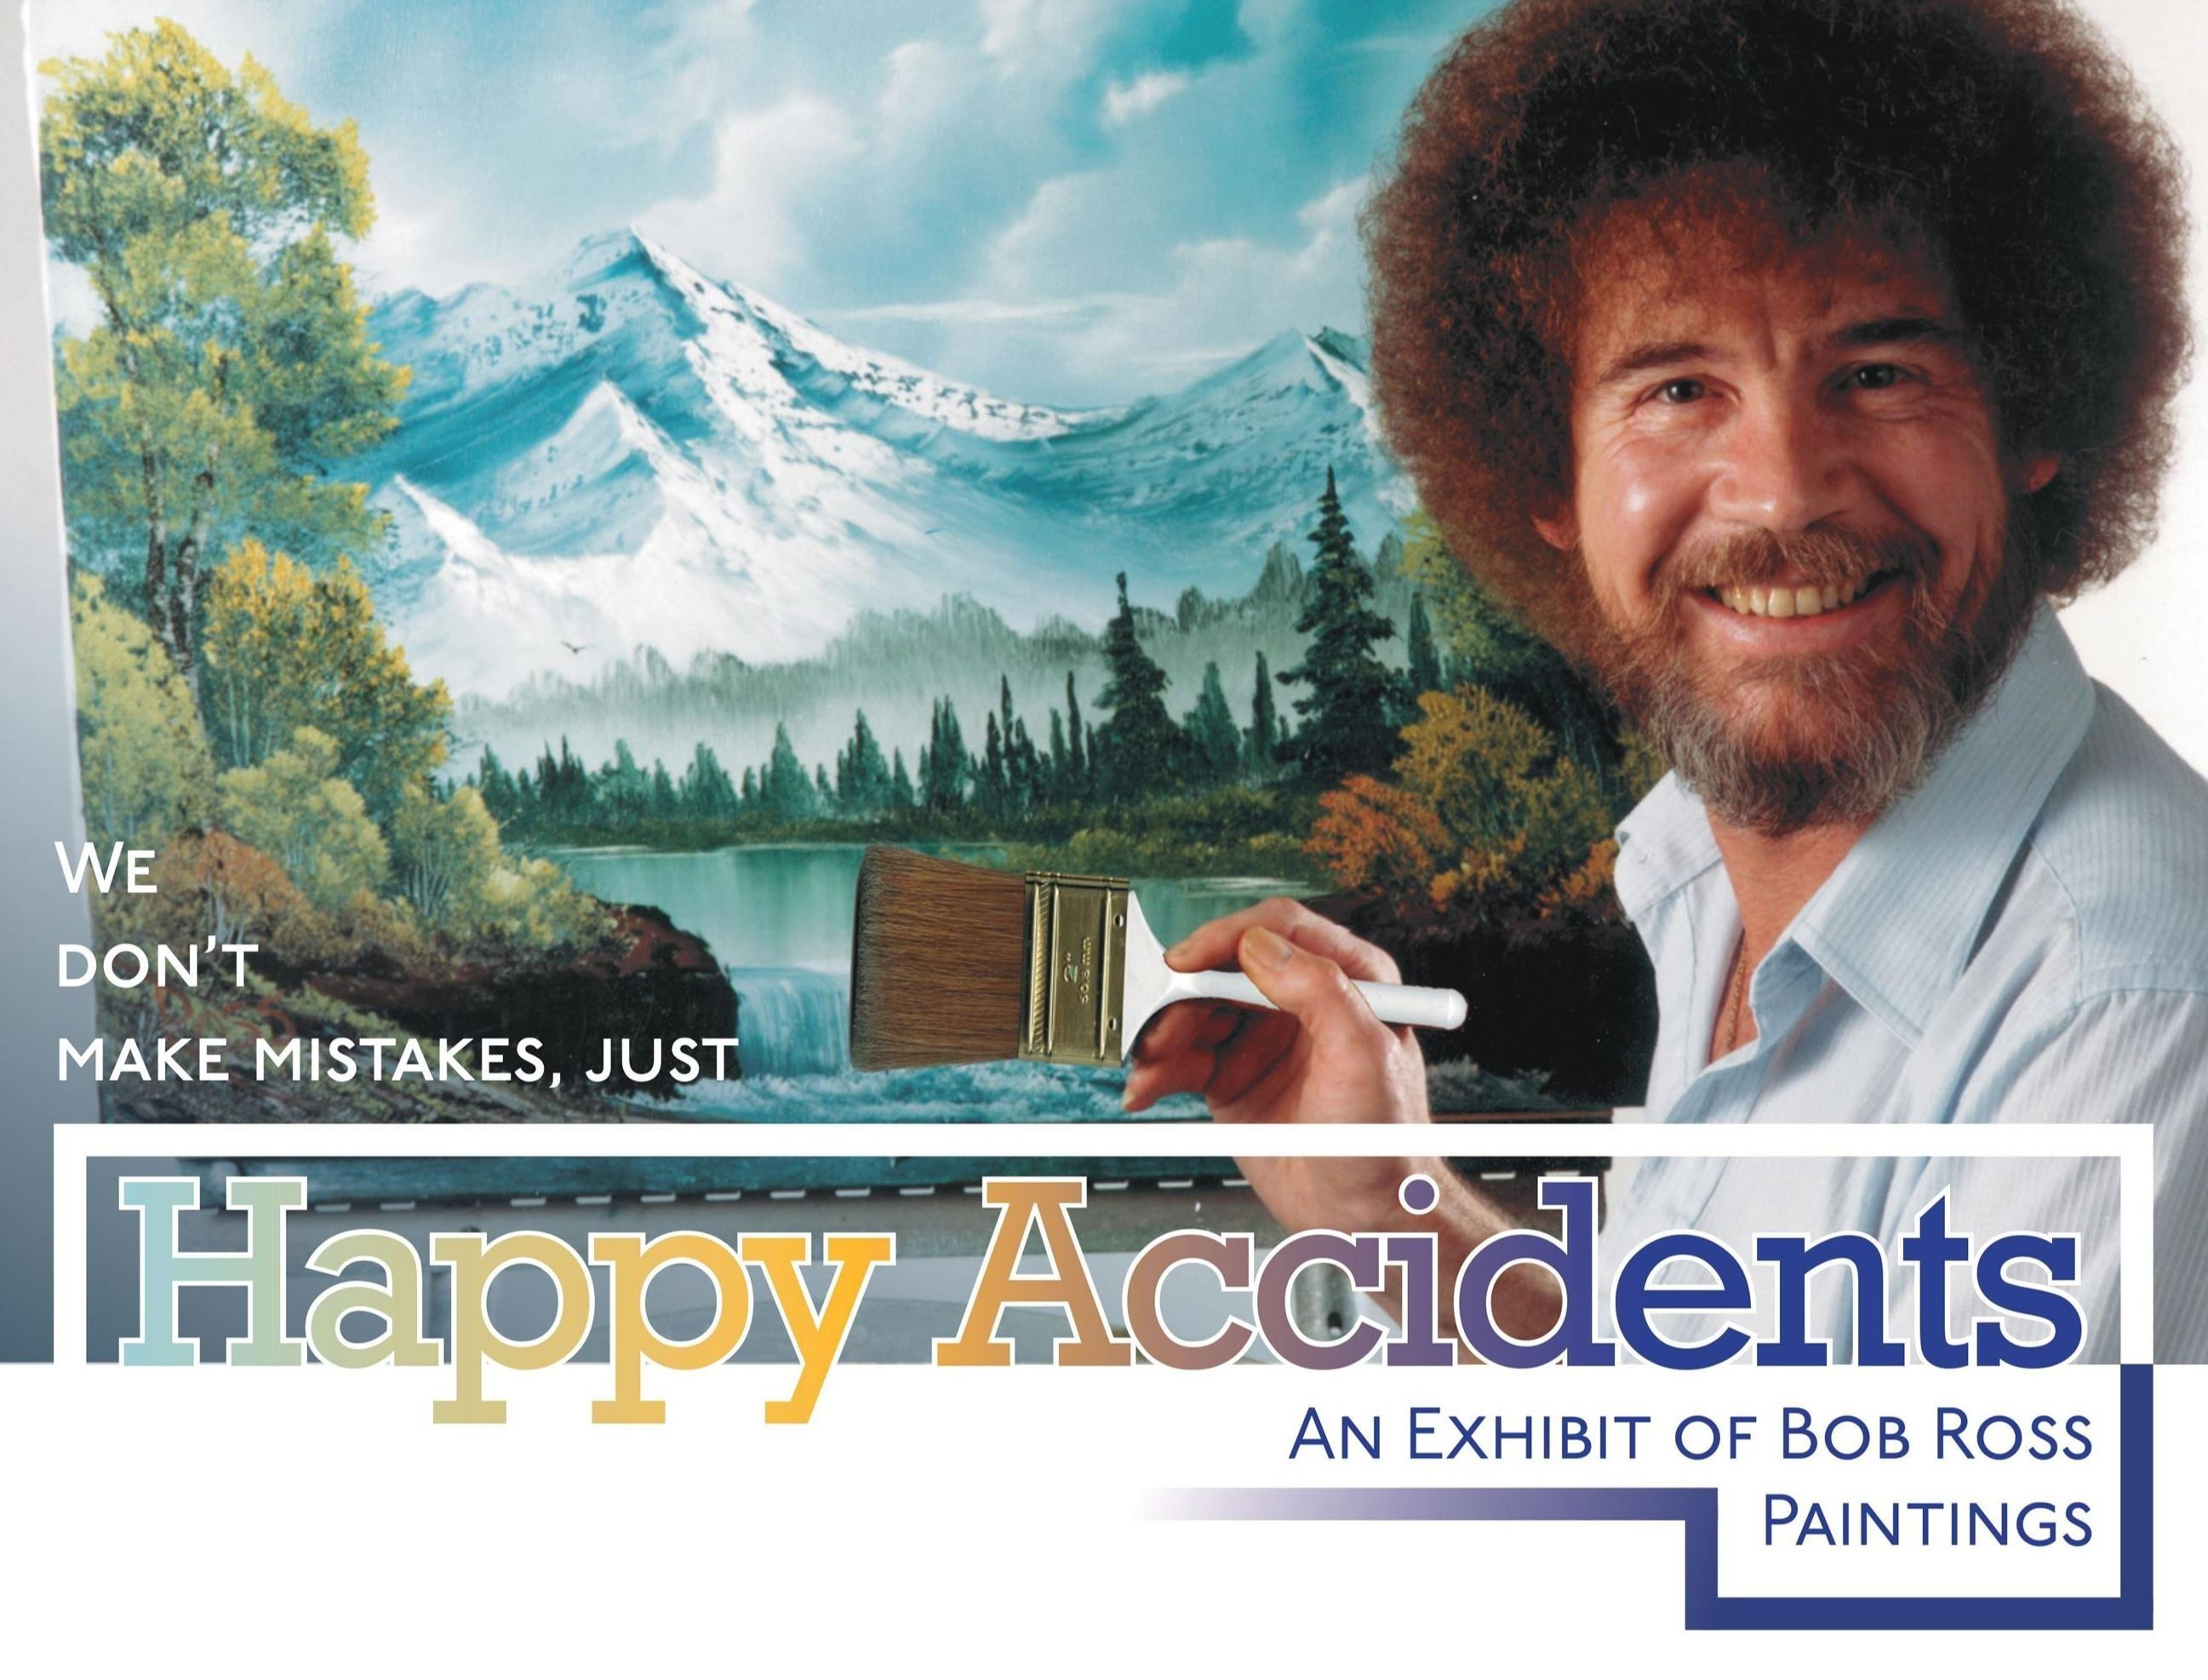 Link to information about Bob Ross exhibit